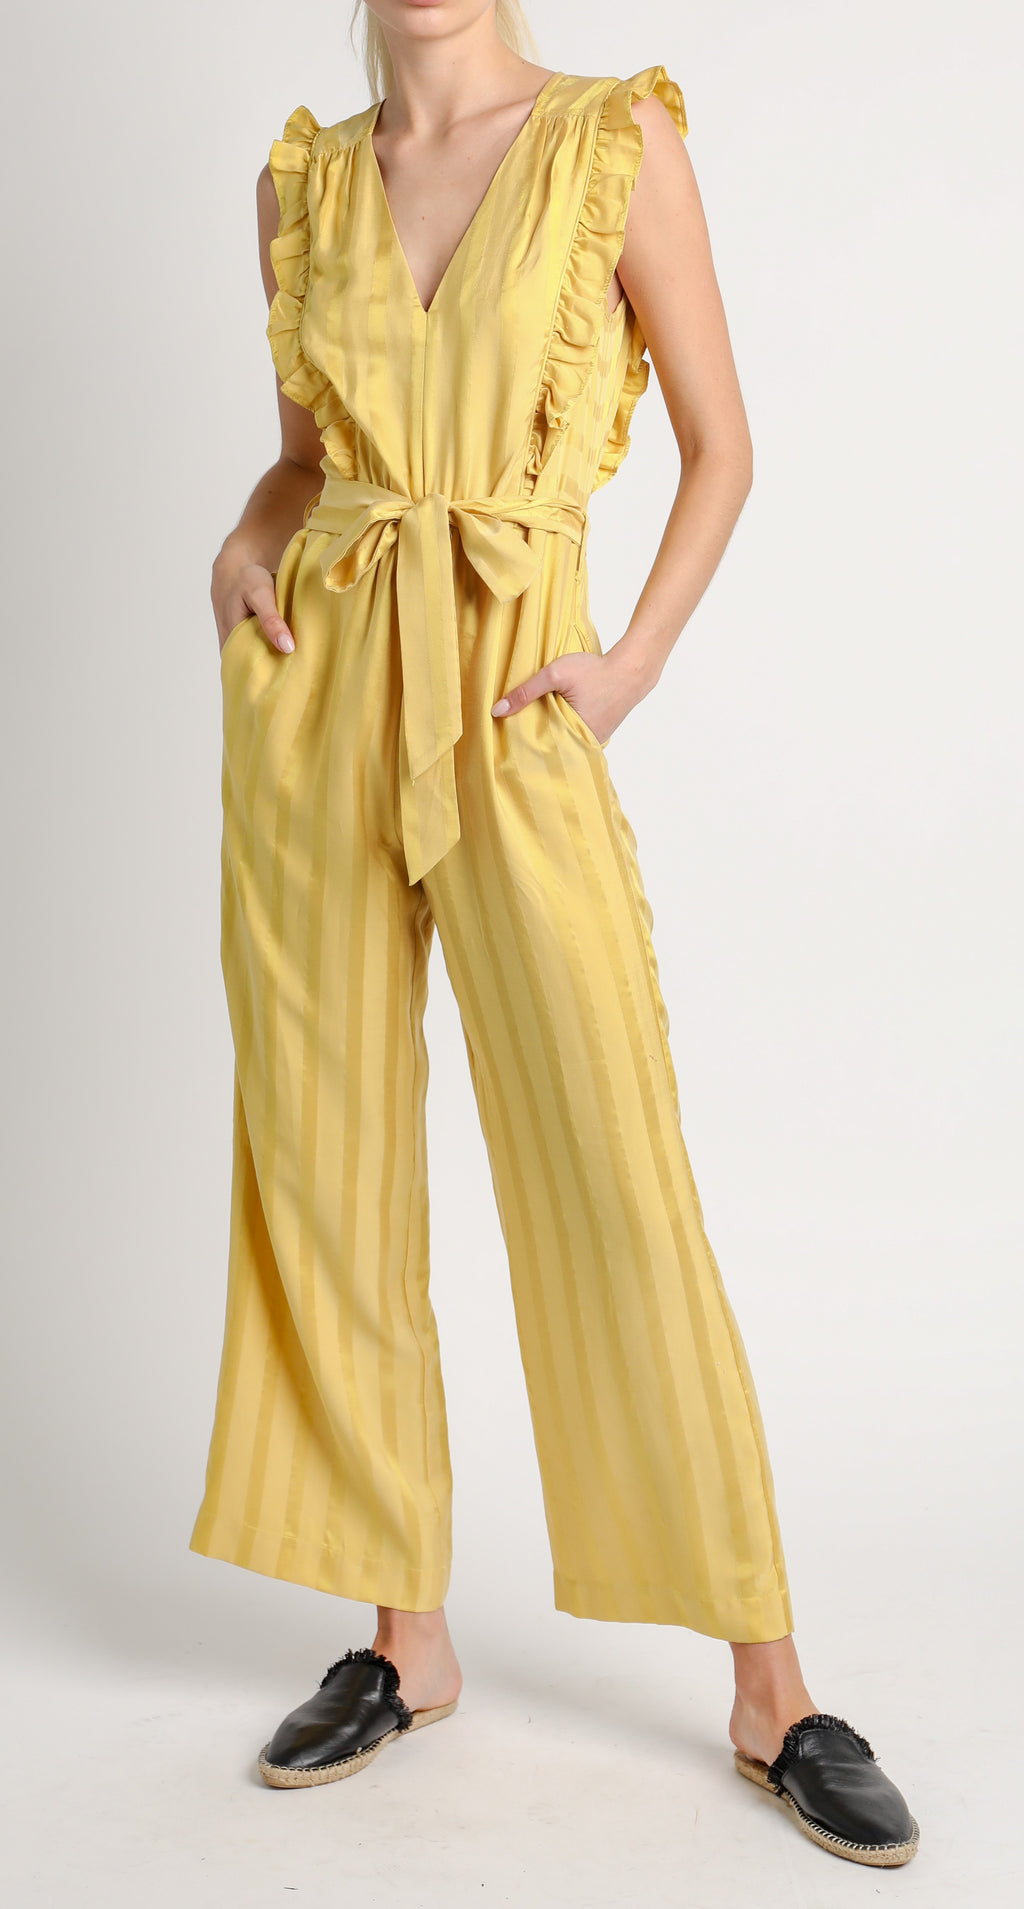 Canary yellow ruffle jumpsuit